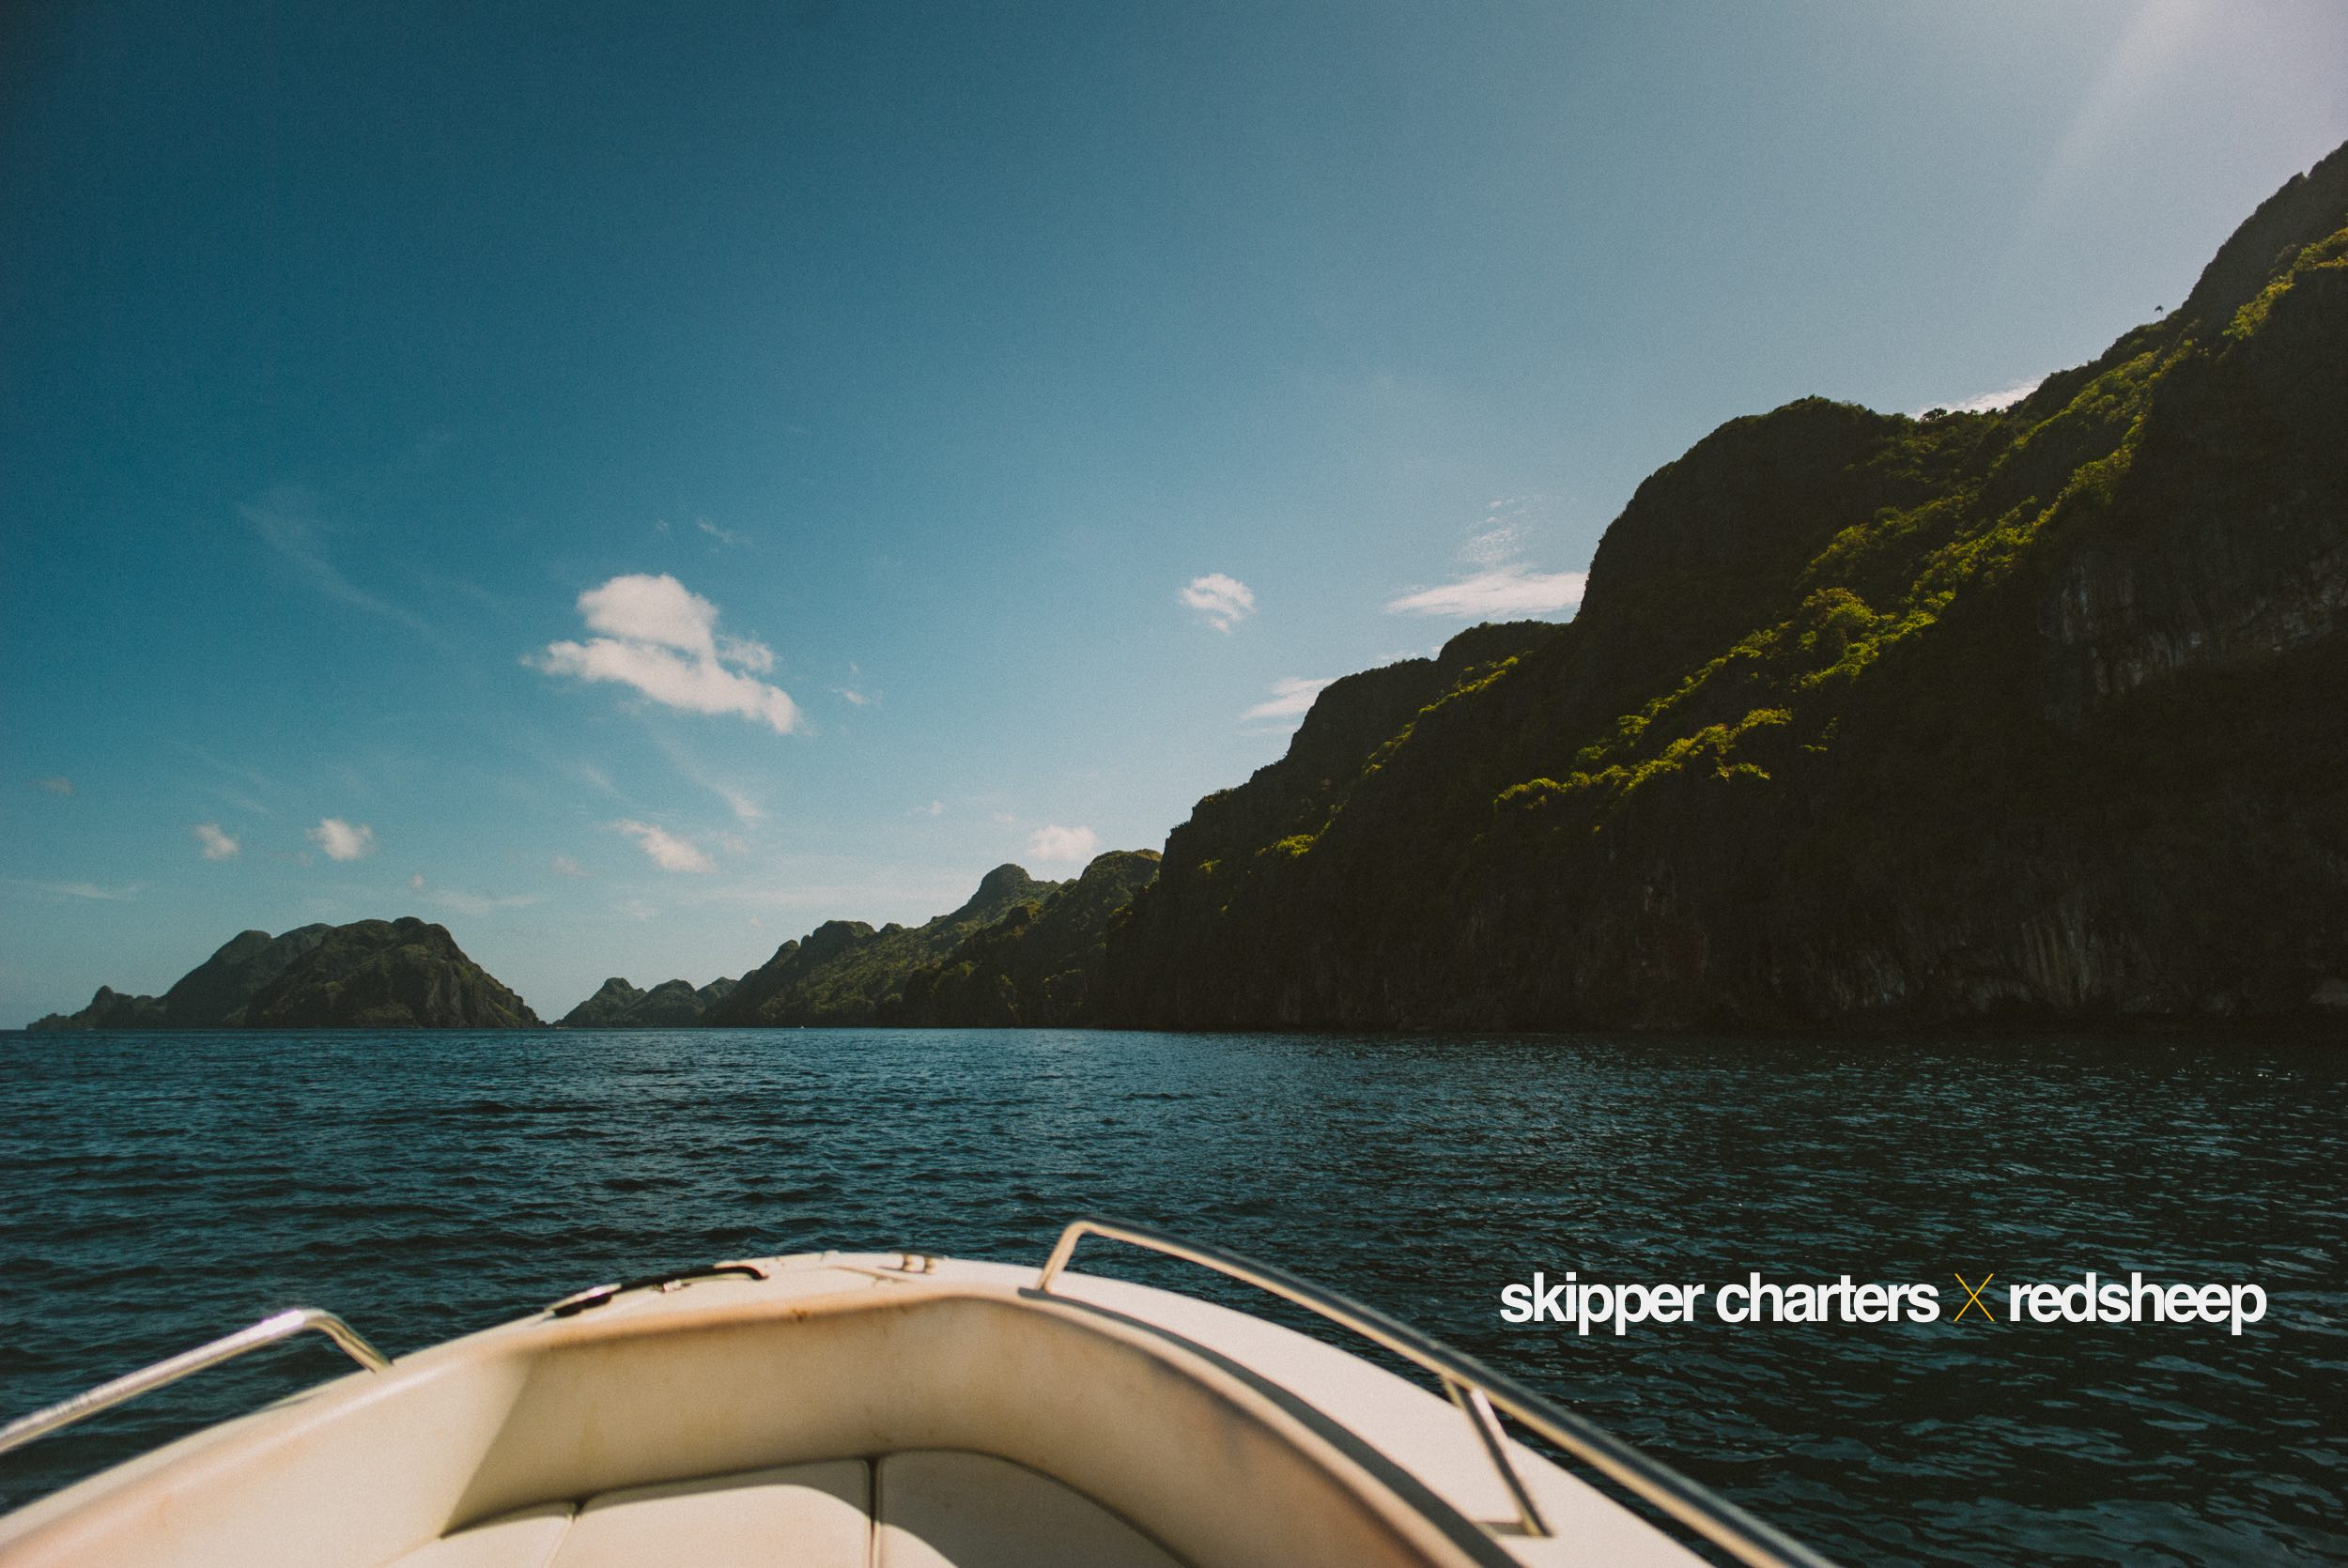 May 16, 2017.  What was perhaps the best way to end last week's shoot-a-thon in El Nido:on a slick, luxury speed boat, darting through Bacuit Bay's waters at 80 knots, going where we wanted to go, doing what we wanted to do.Thank you Skipper Charters for this private tour! (Hey Monica,Montri & Begs!)